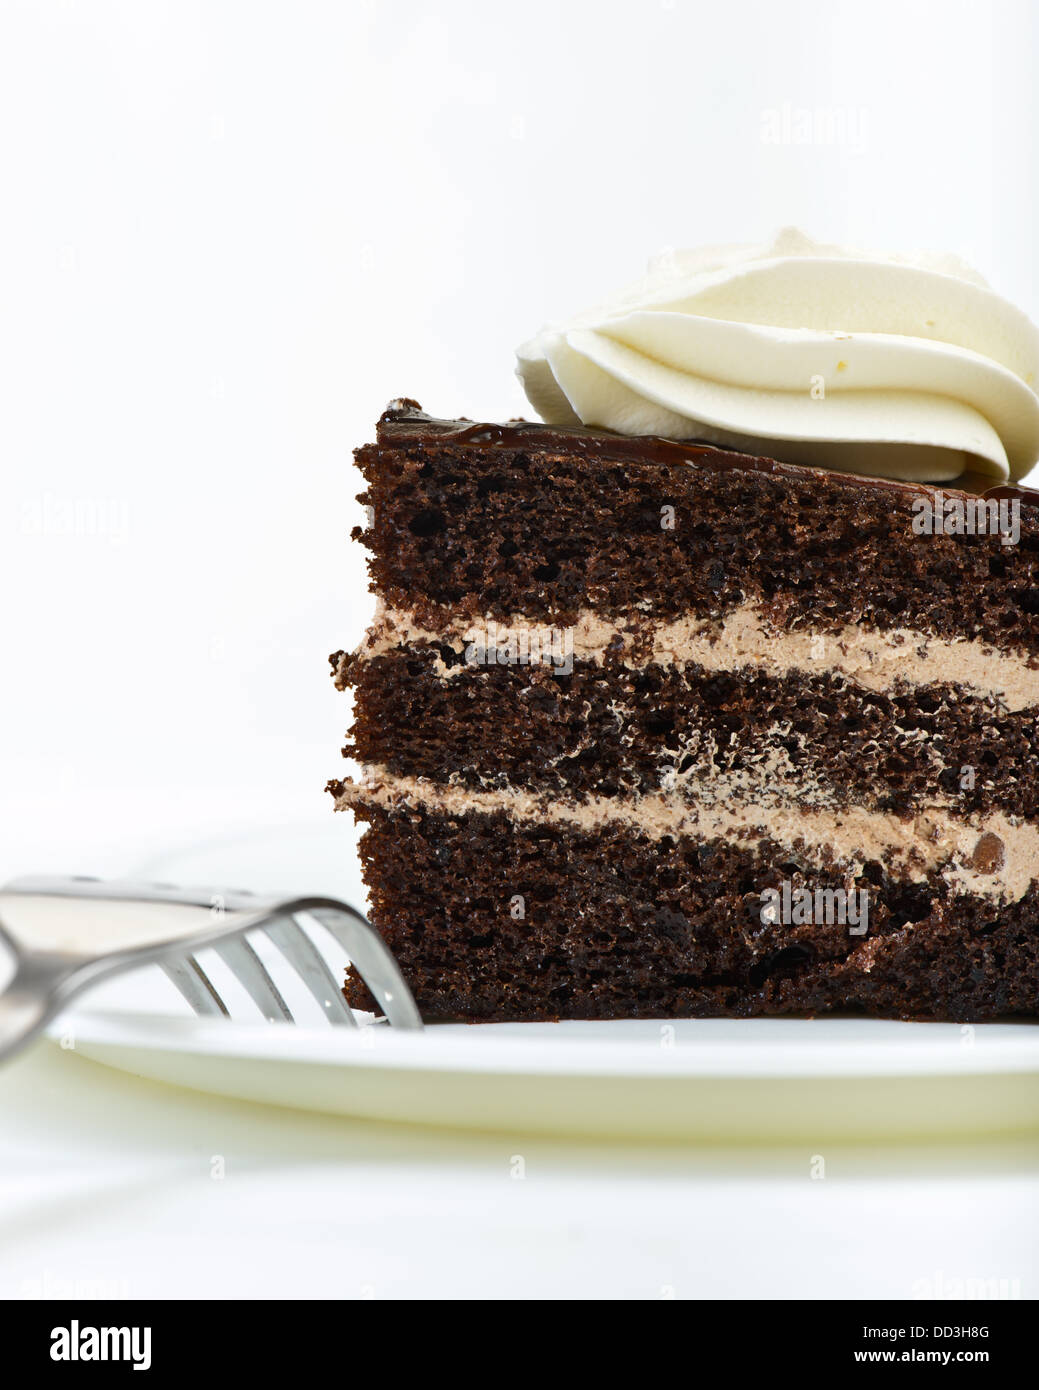 Chocolate Cake on plate with fork - Stock Image